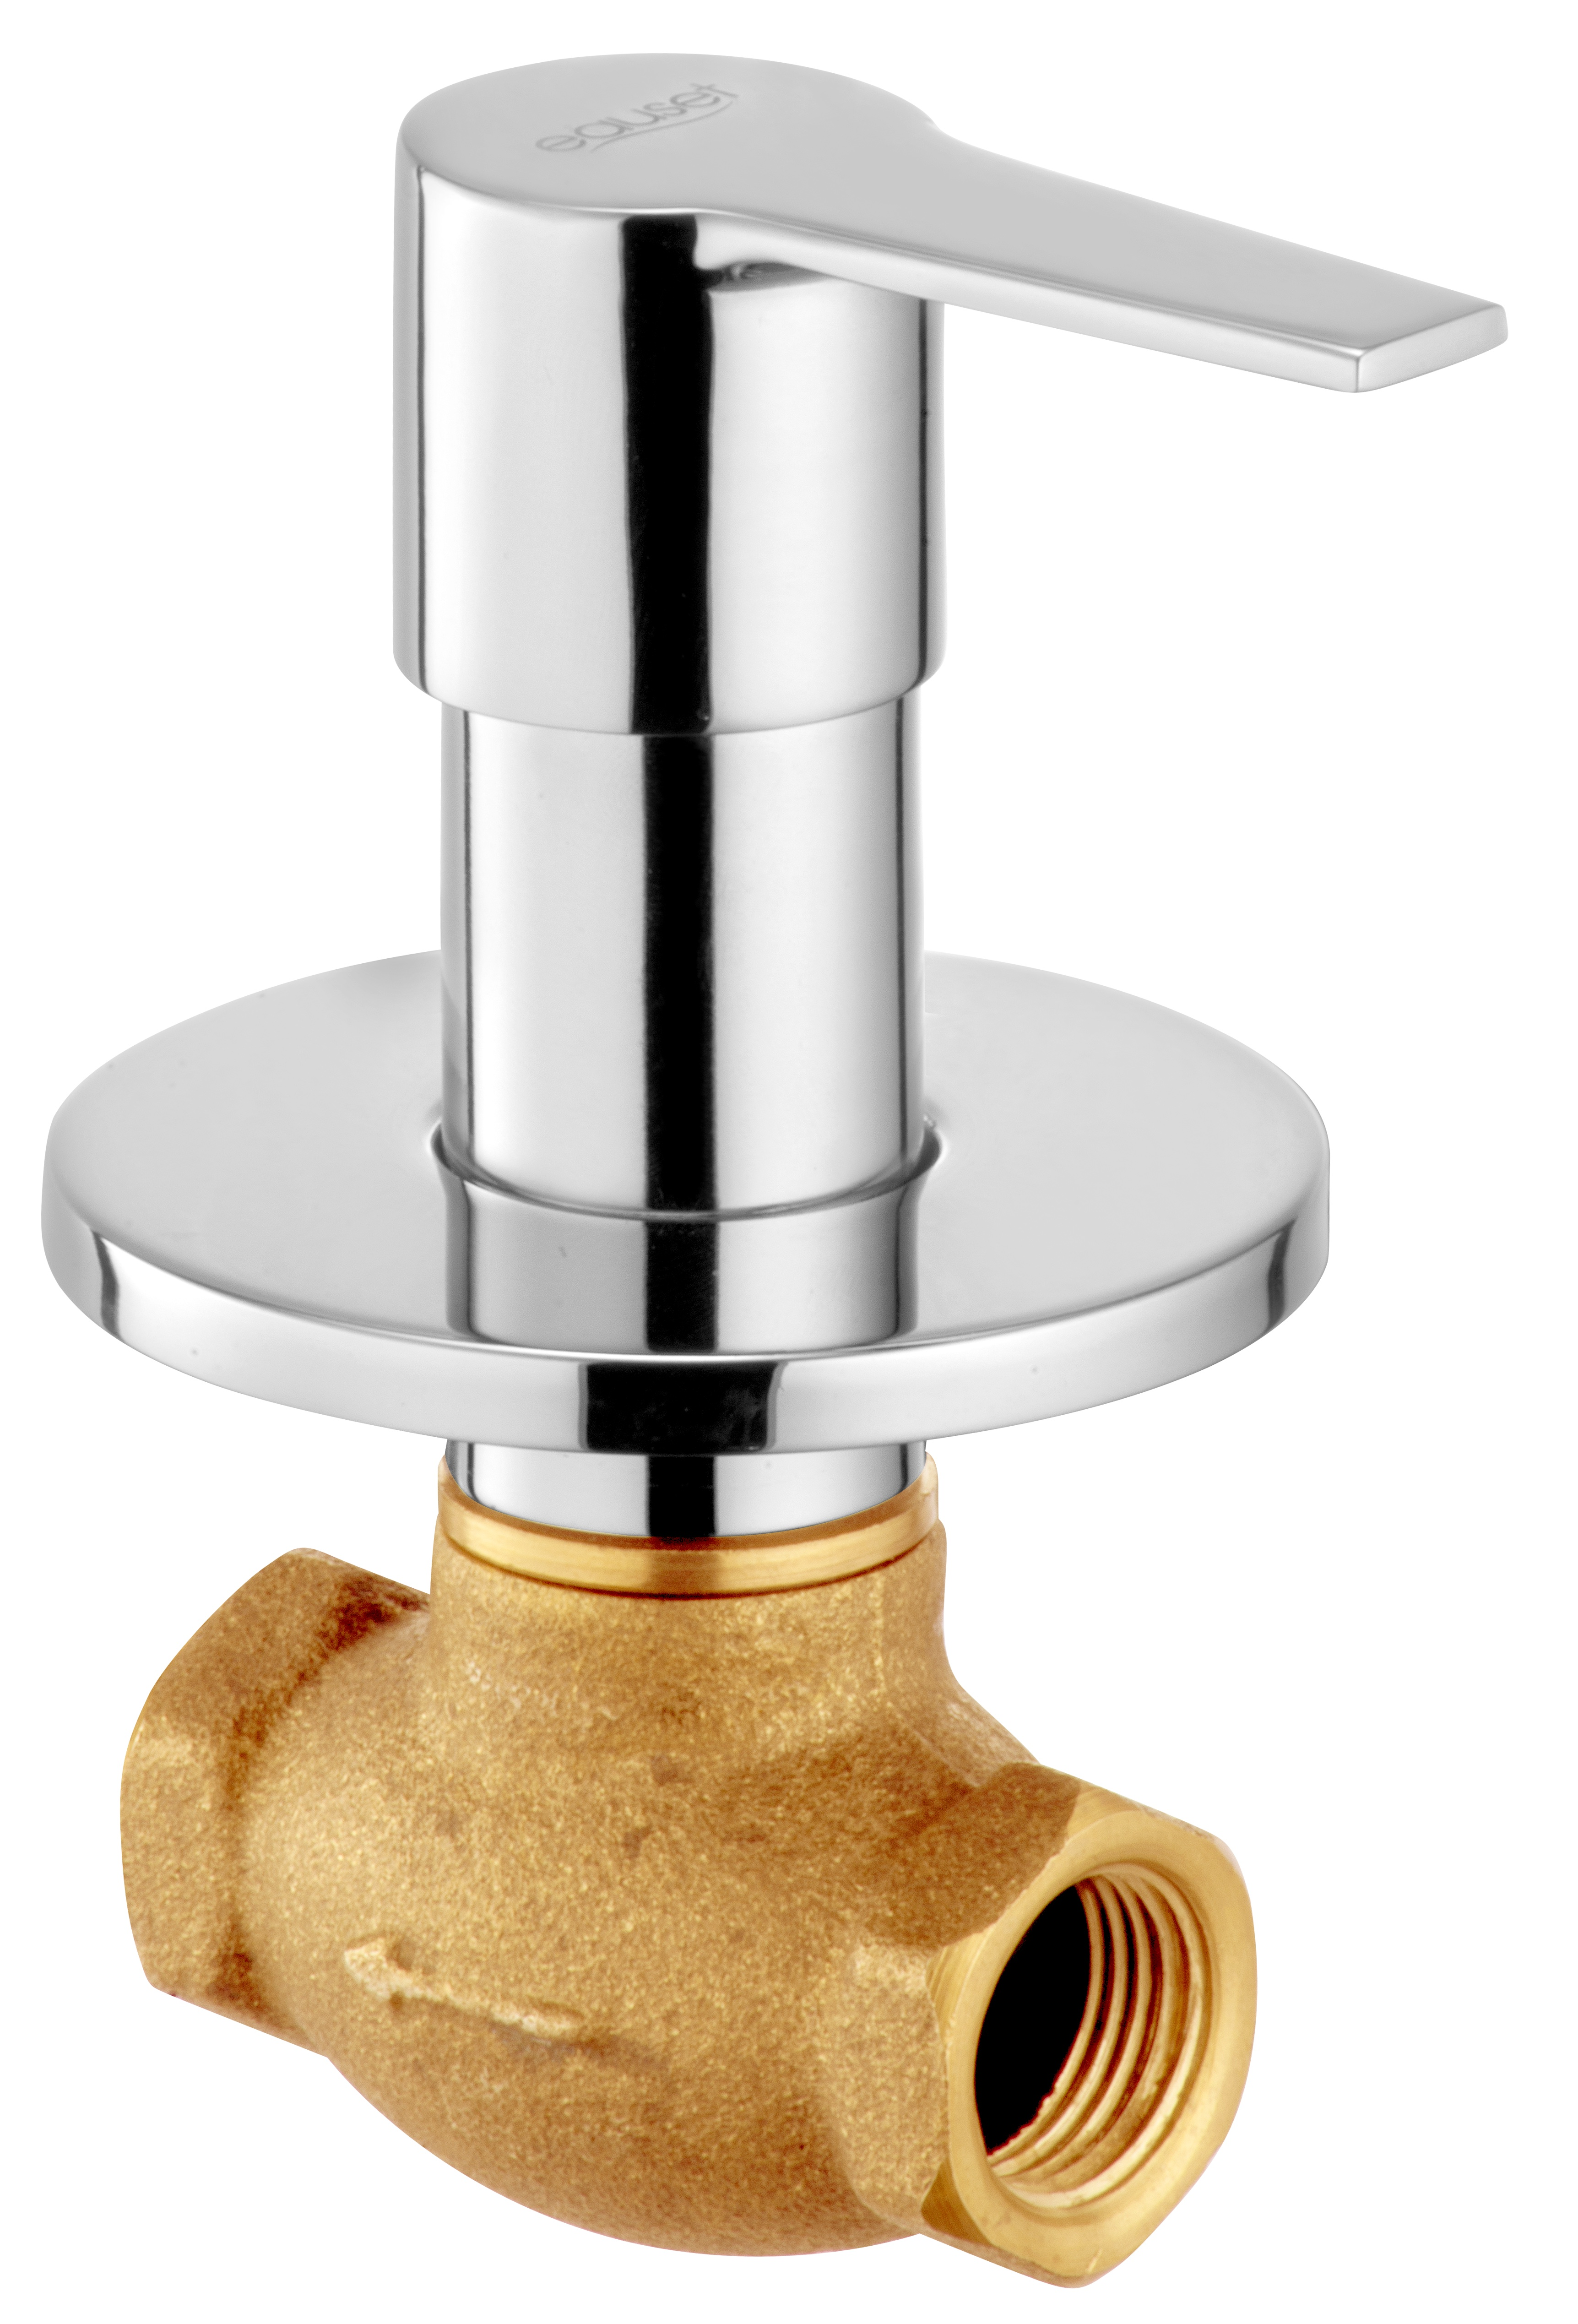 Concealed Stop Cock 15mm With Wall Flange